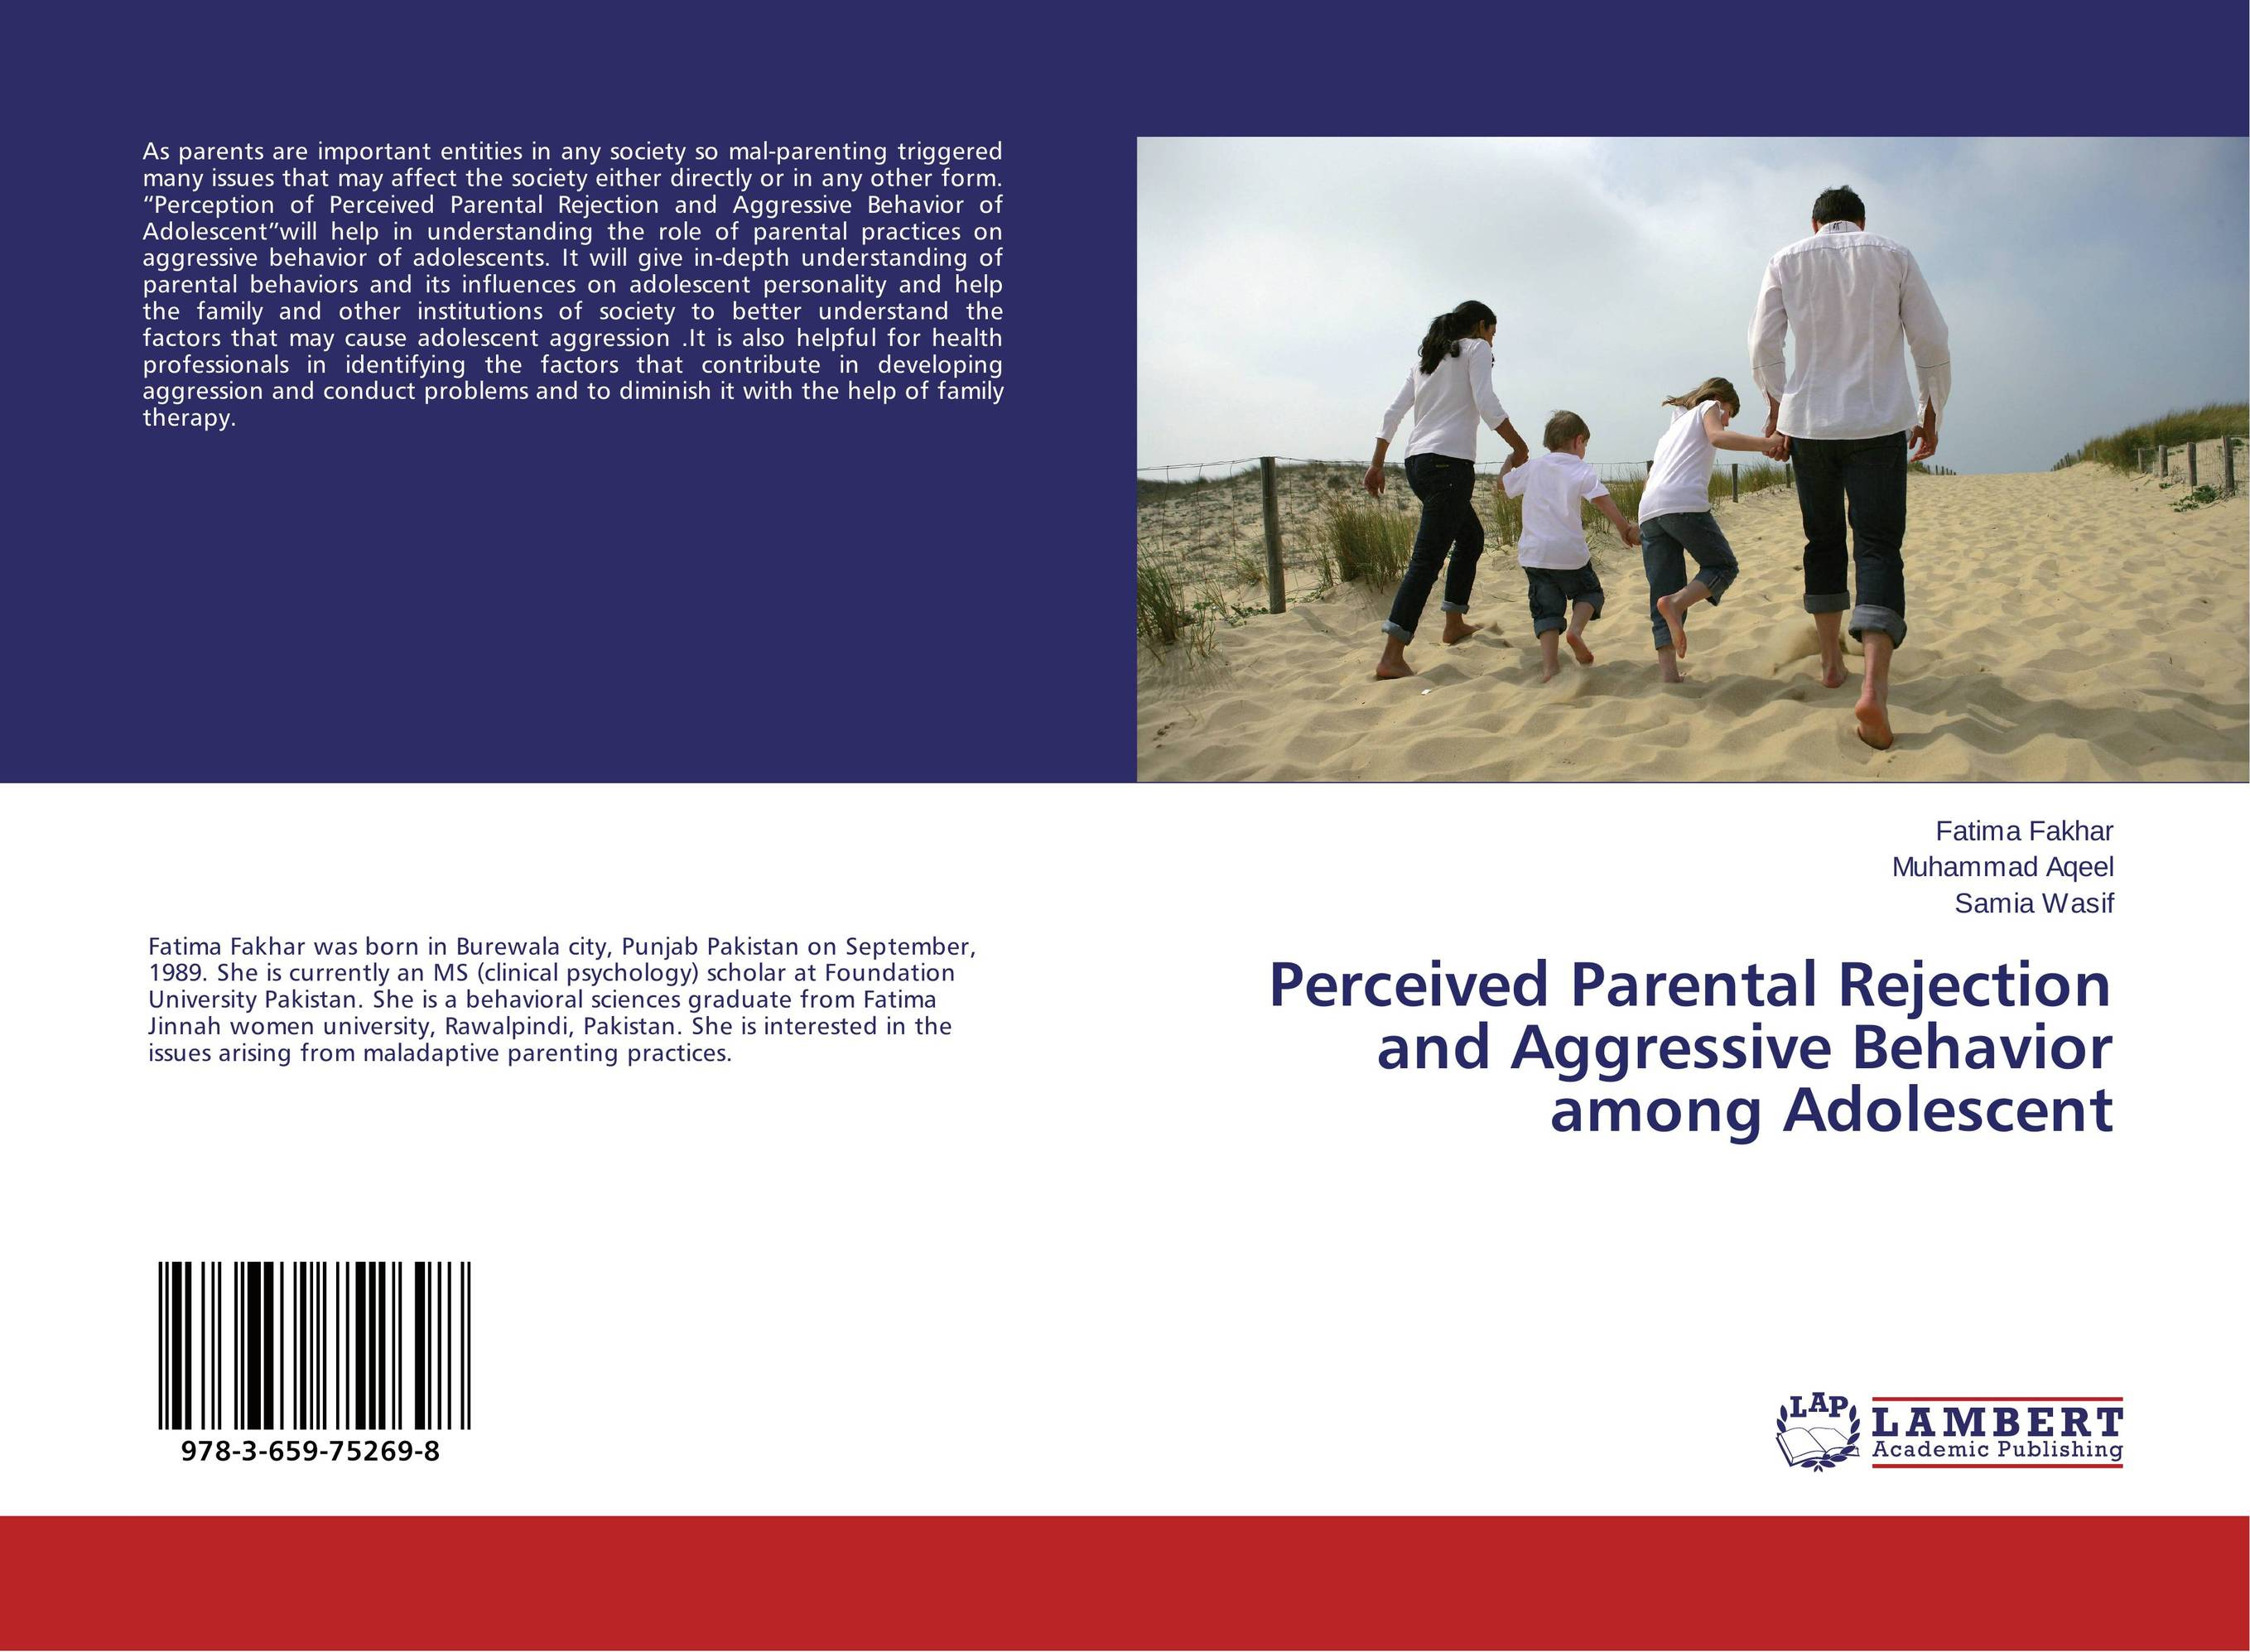 Perceived Parental Rejection and Aggressive Behavior among Adolescent the role of family interventions in the therapy of eating disorders